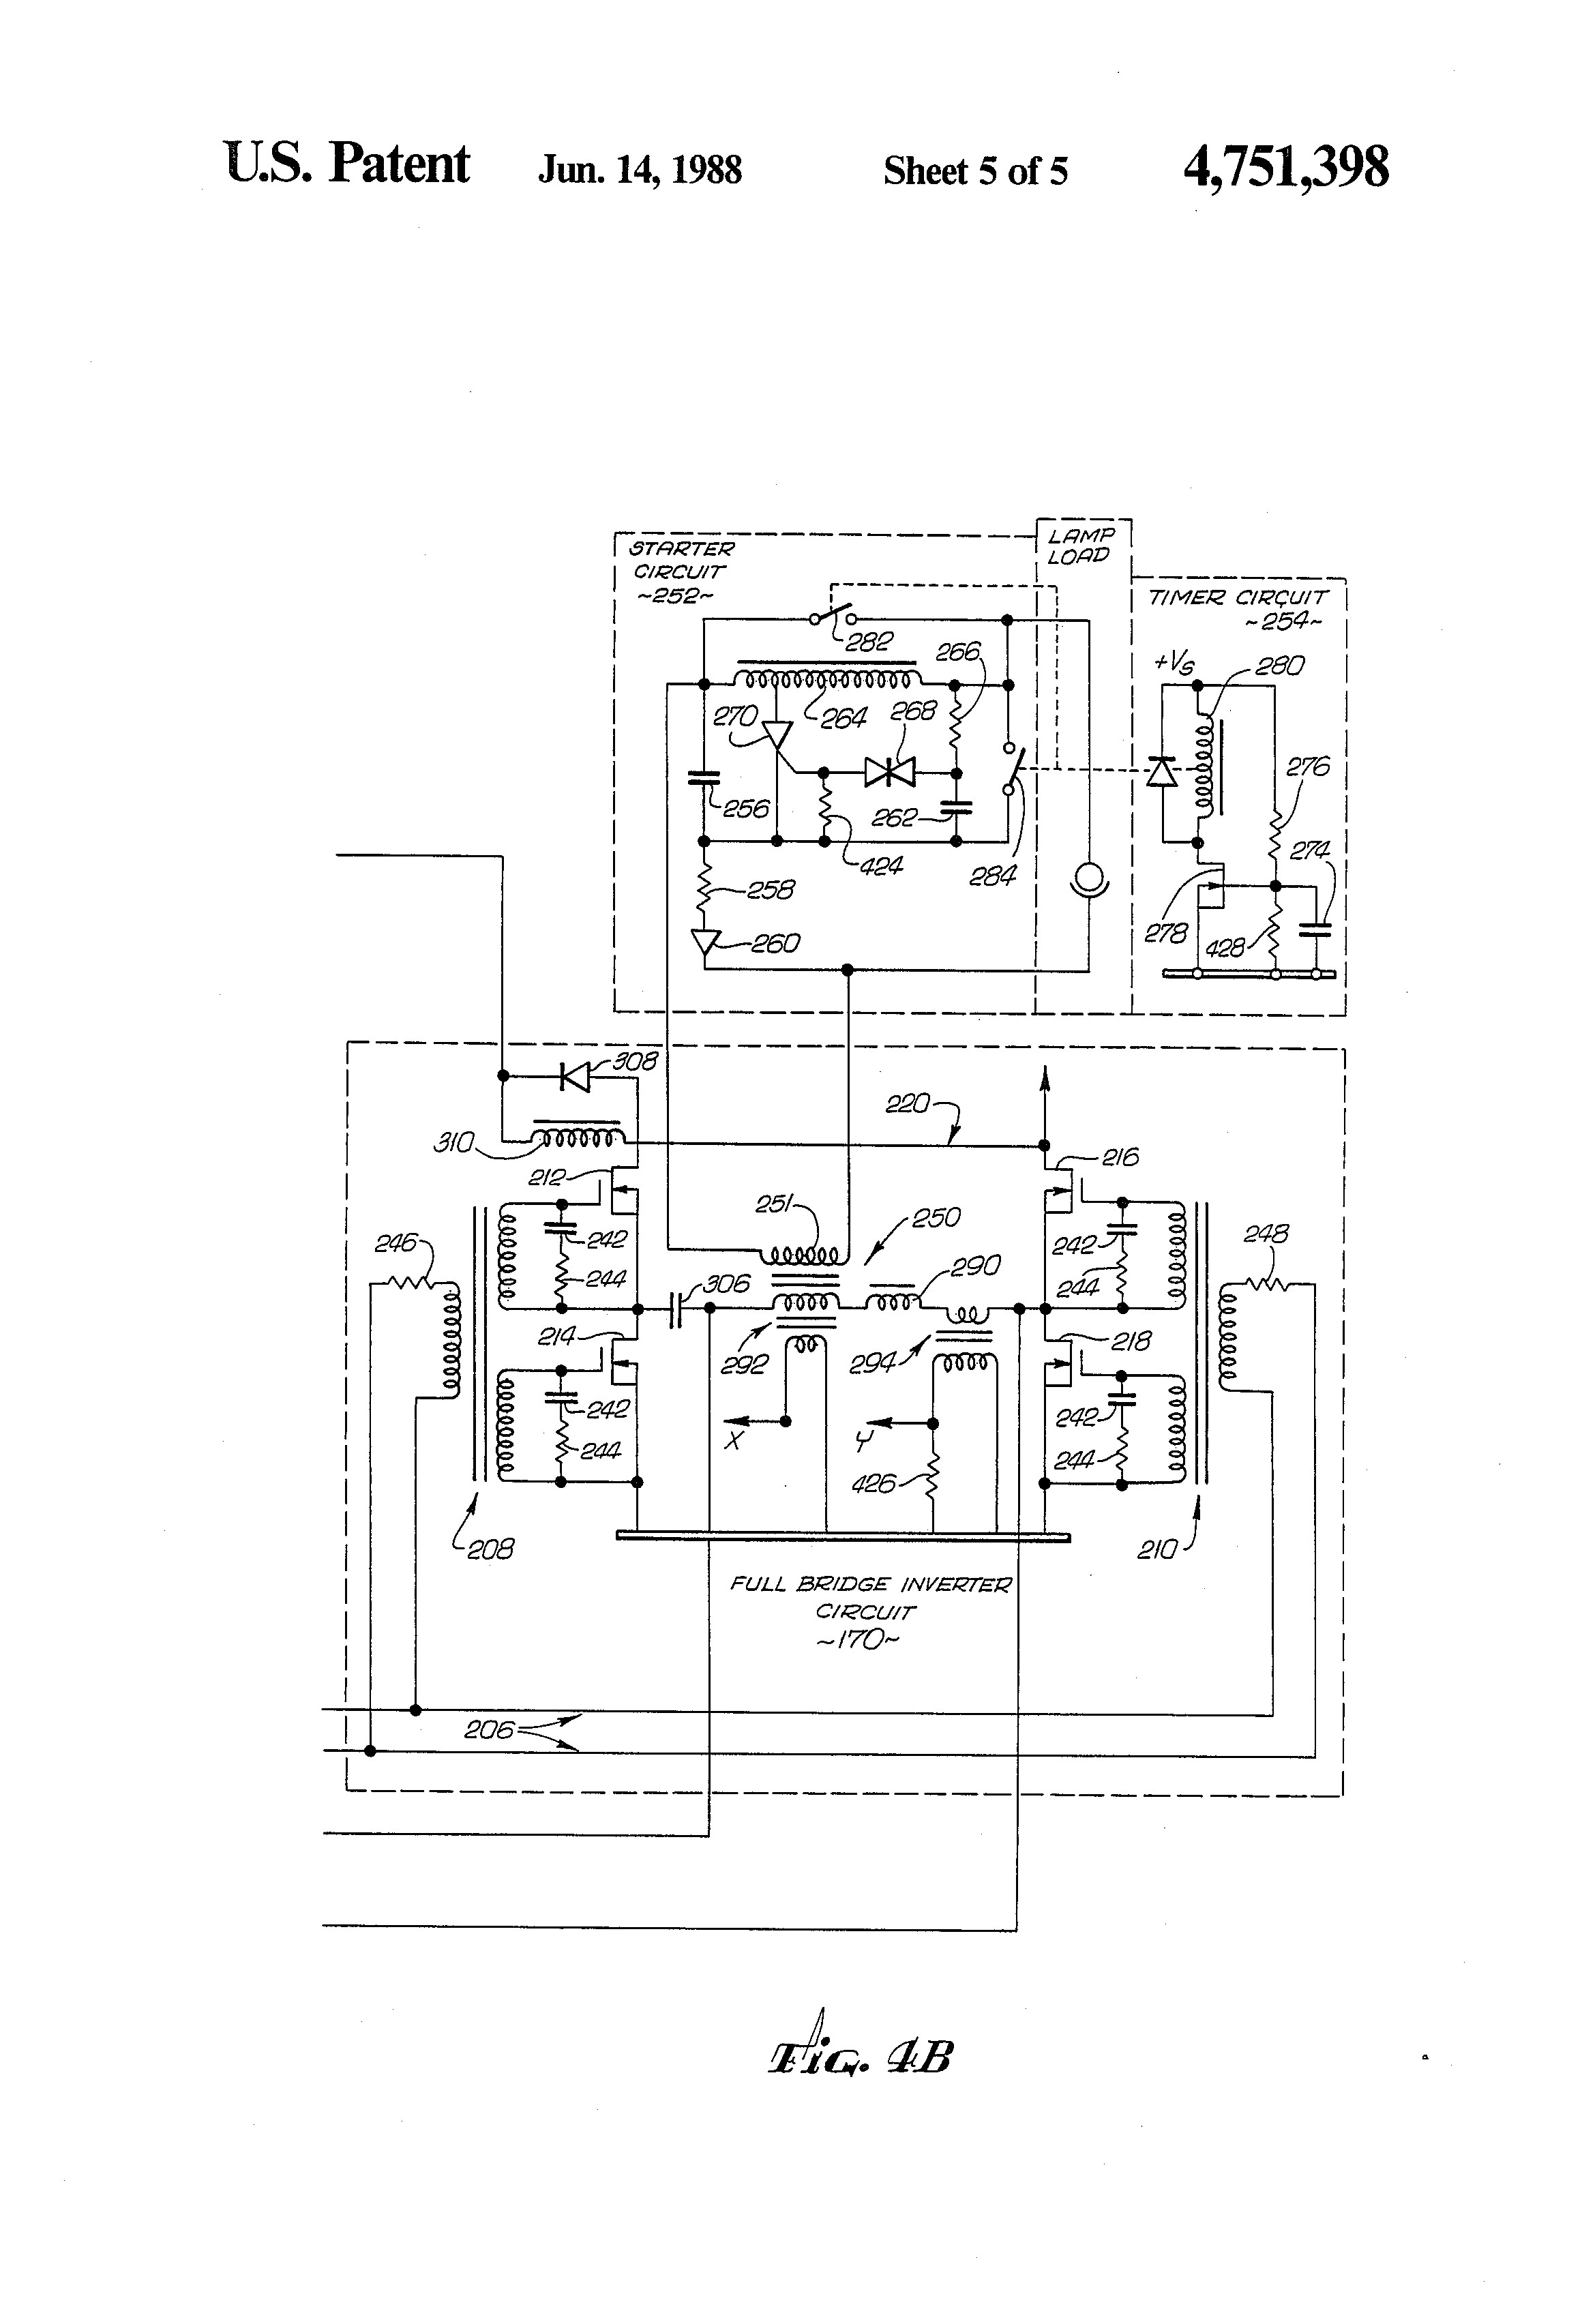 250 watt ballast wiring diagram wiring diagram1000 watt metal halide ballast wiring diagram wiring schematic diagramballast metal halide installation diagram wiring diagram